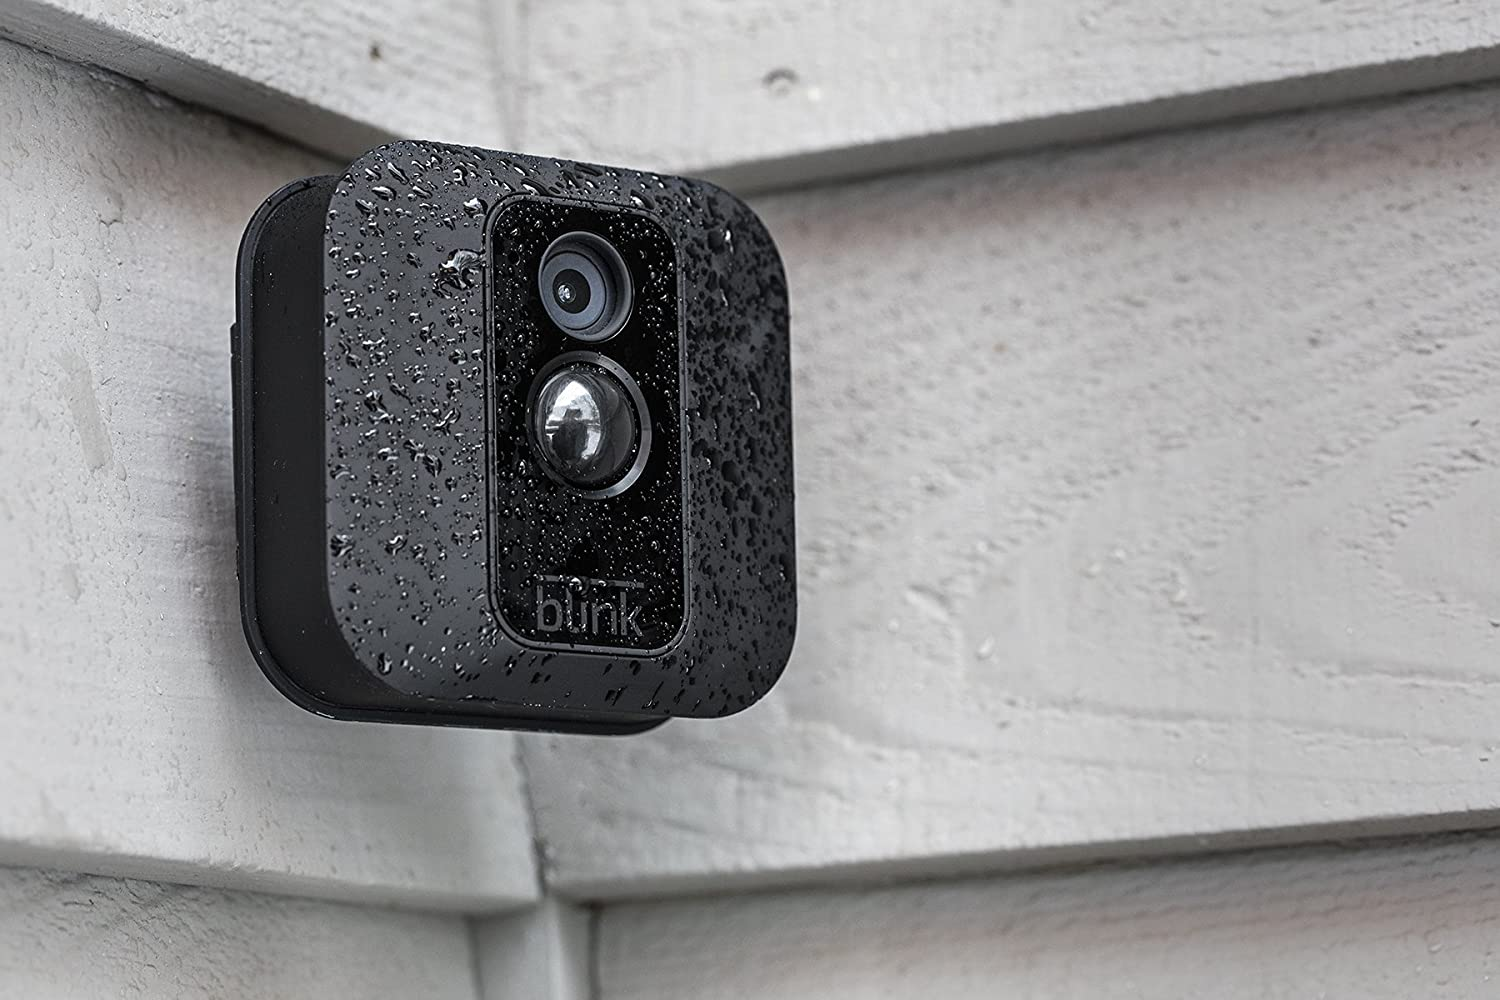 Blink XT Home Security Camera System (New) on Woot!